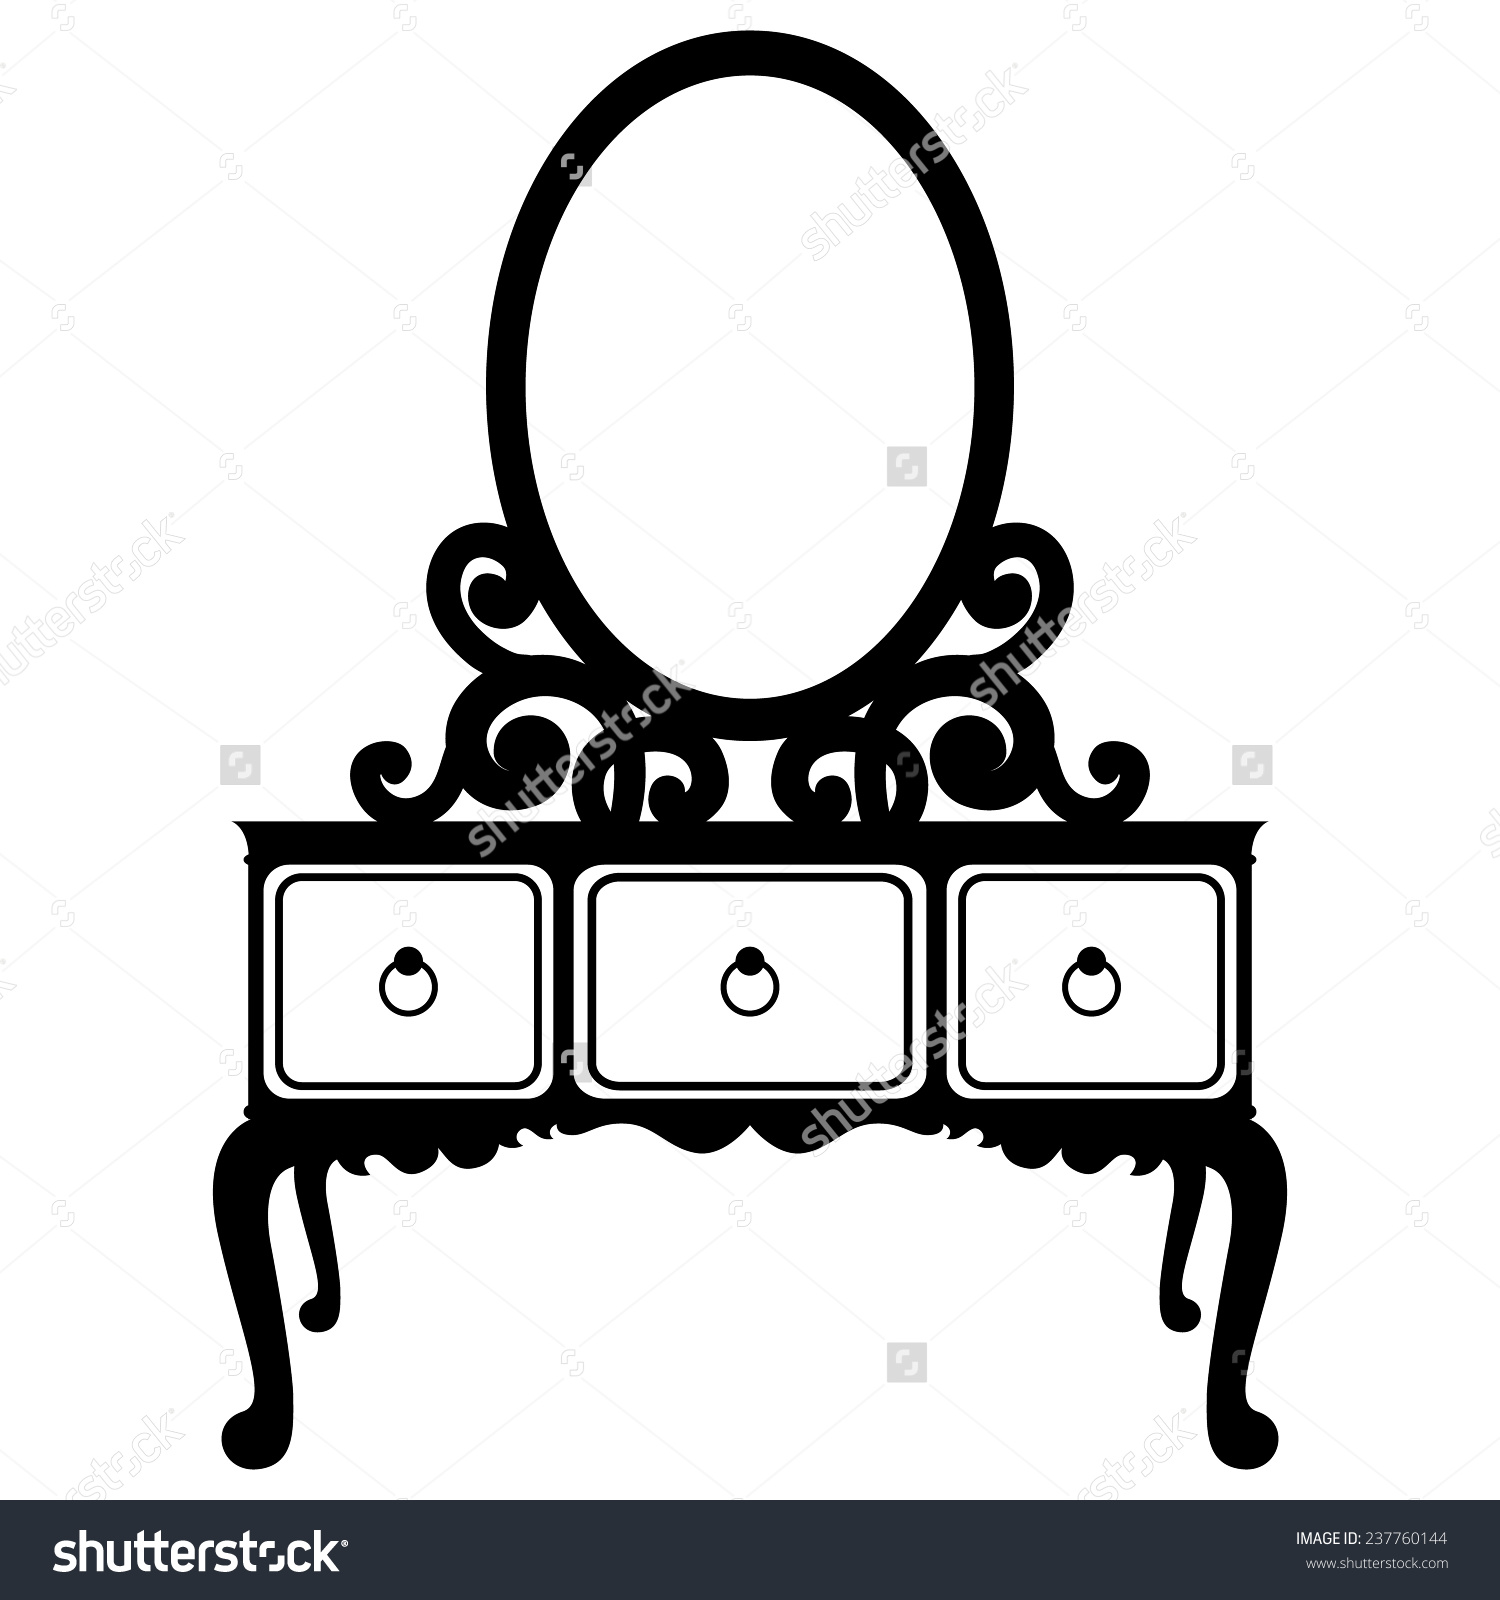 Mirror clipart silhouette Dressing Silhouette mirror Mirror Illustration